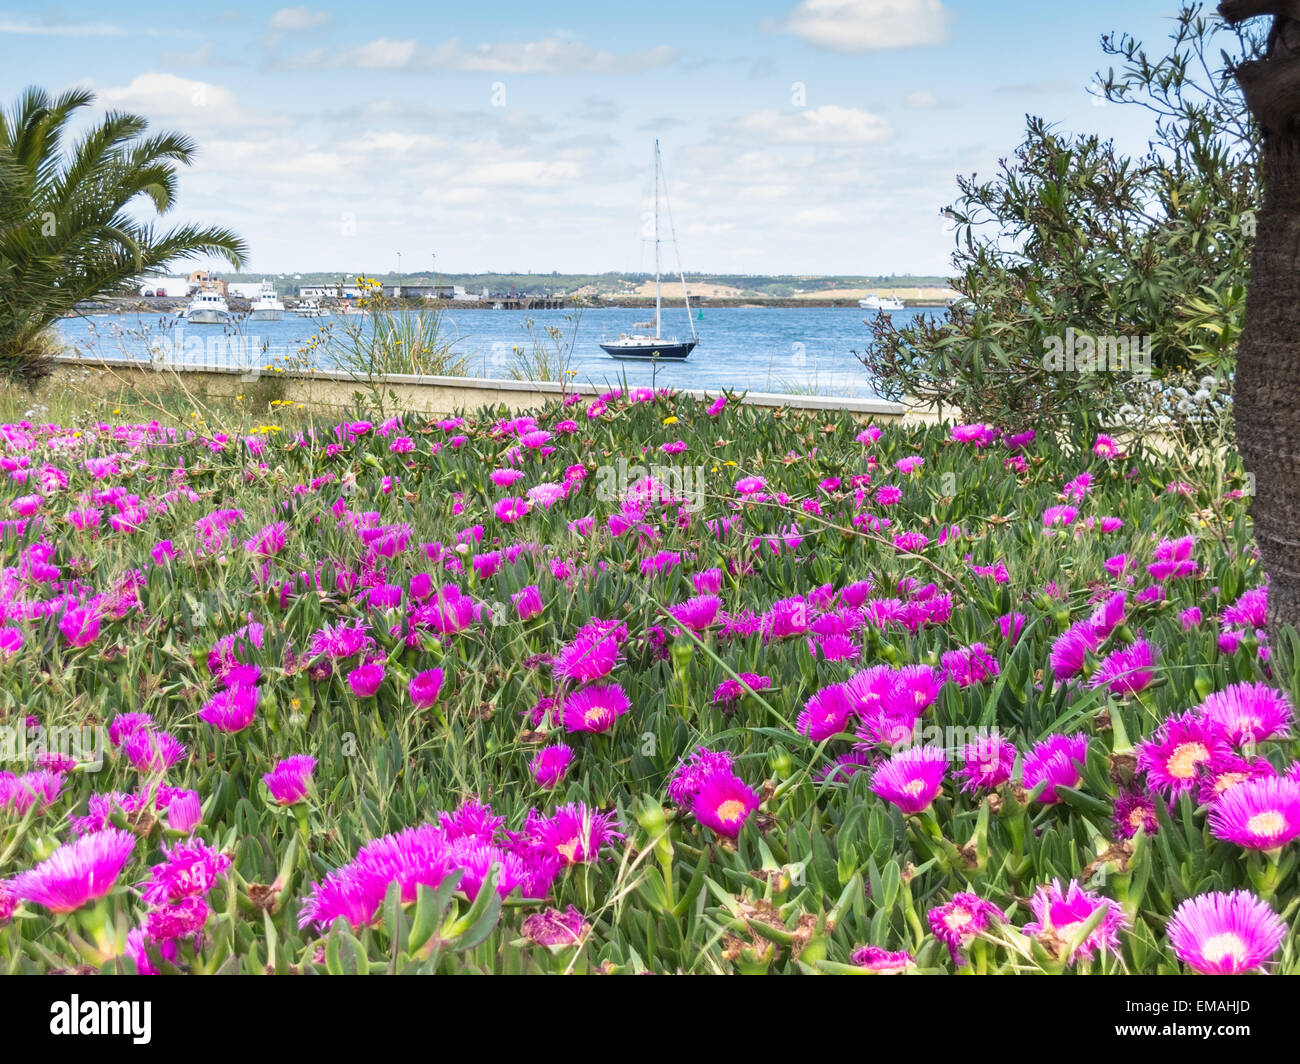 Punta de Moral, Spain. 18th April, 2015. Beautiful weather in Anadlucia and pretty pink flowers grow by the coast. - Stock Image